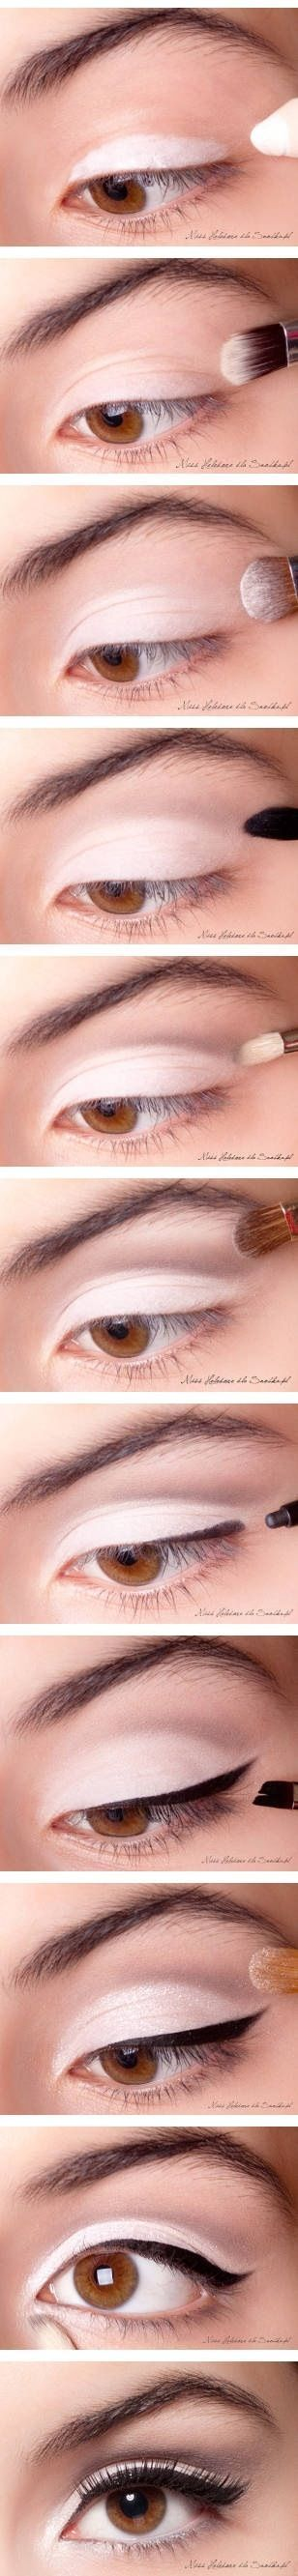 Classic makeup, in my opinion the perfect makeup to use for everyday makeup for back to school